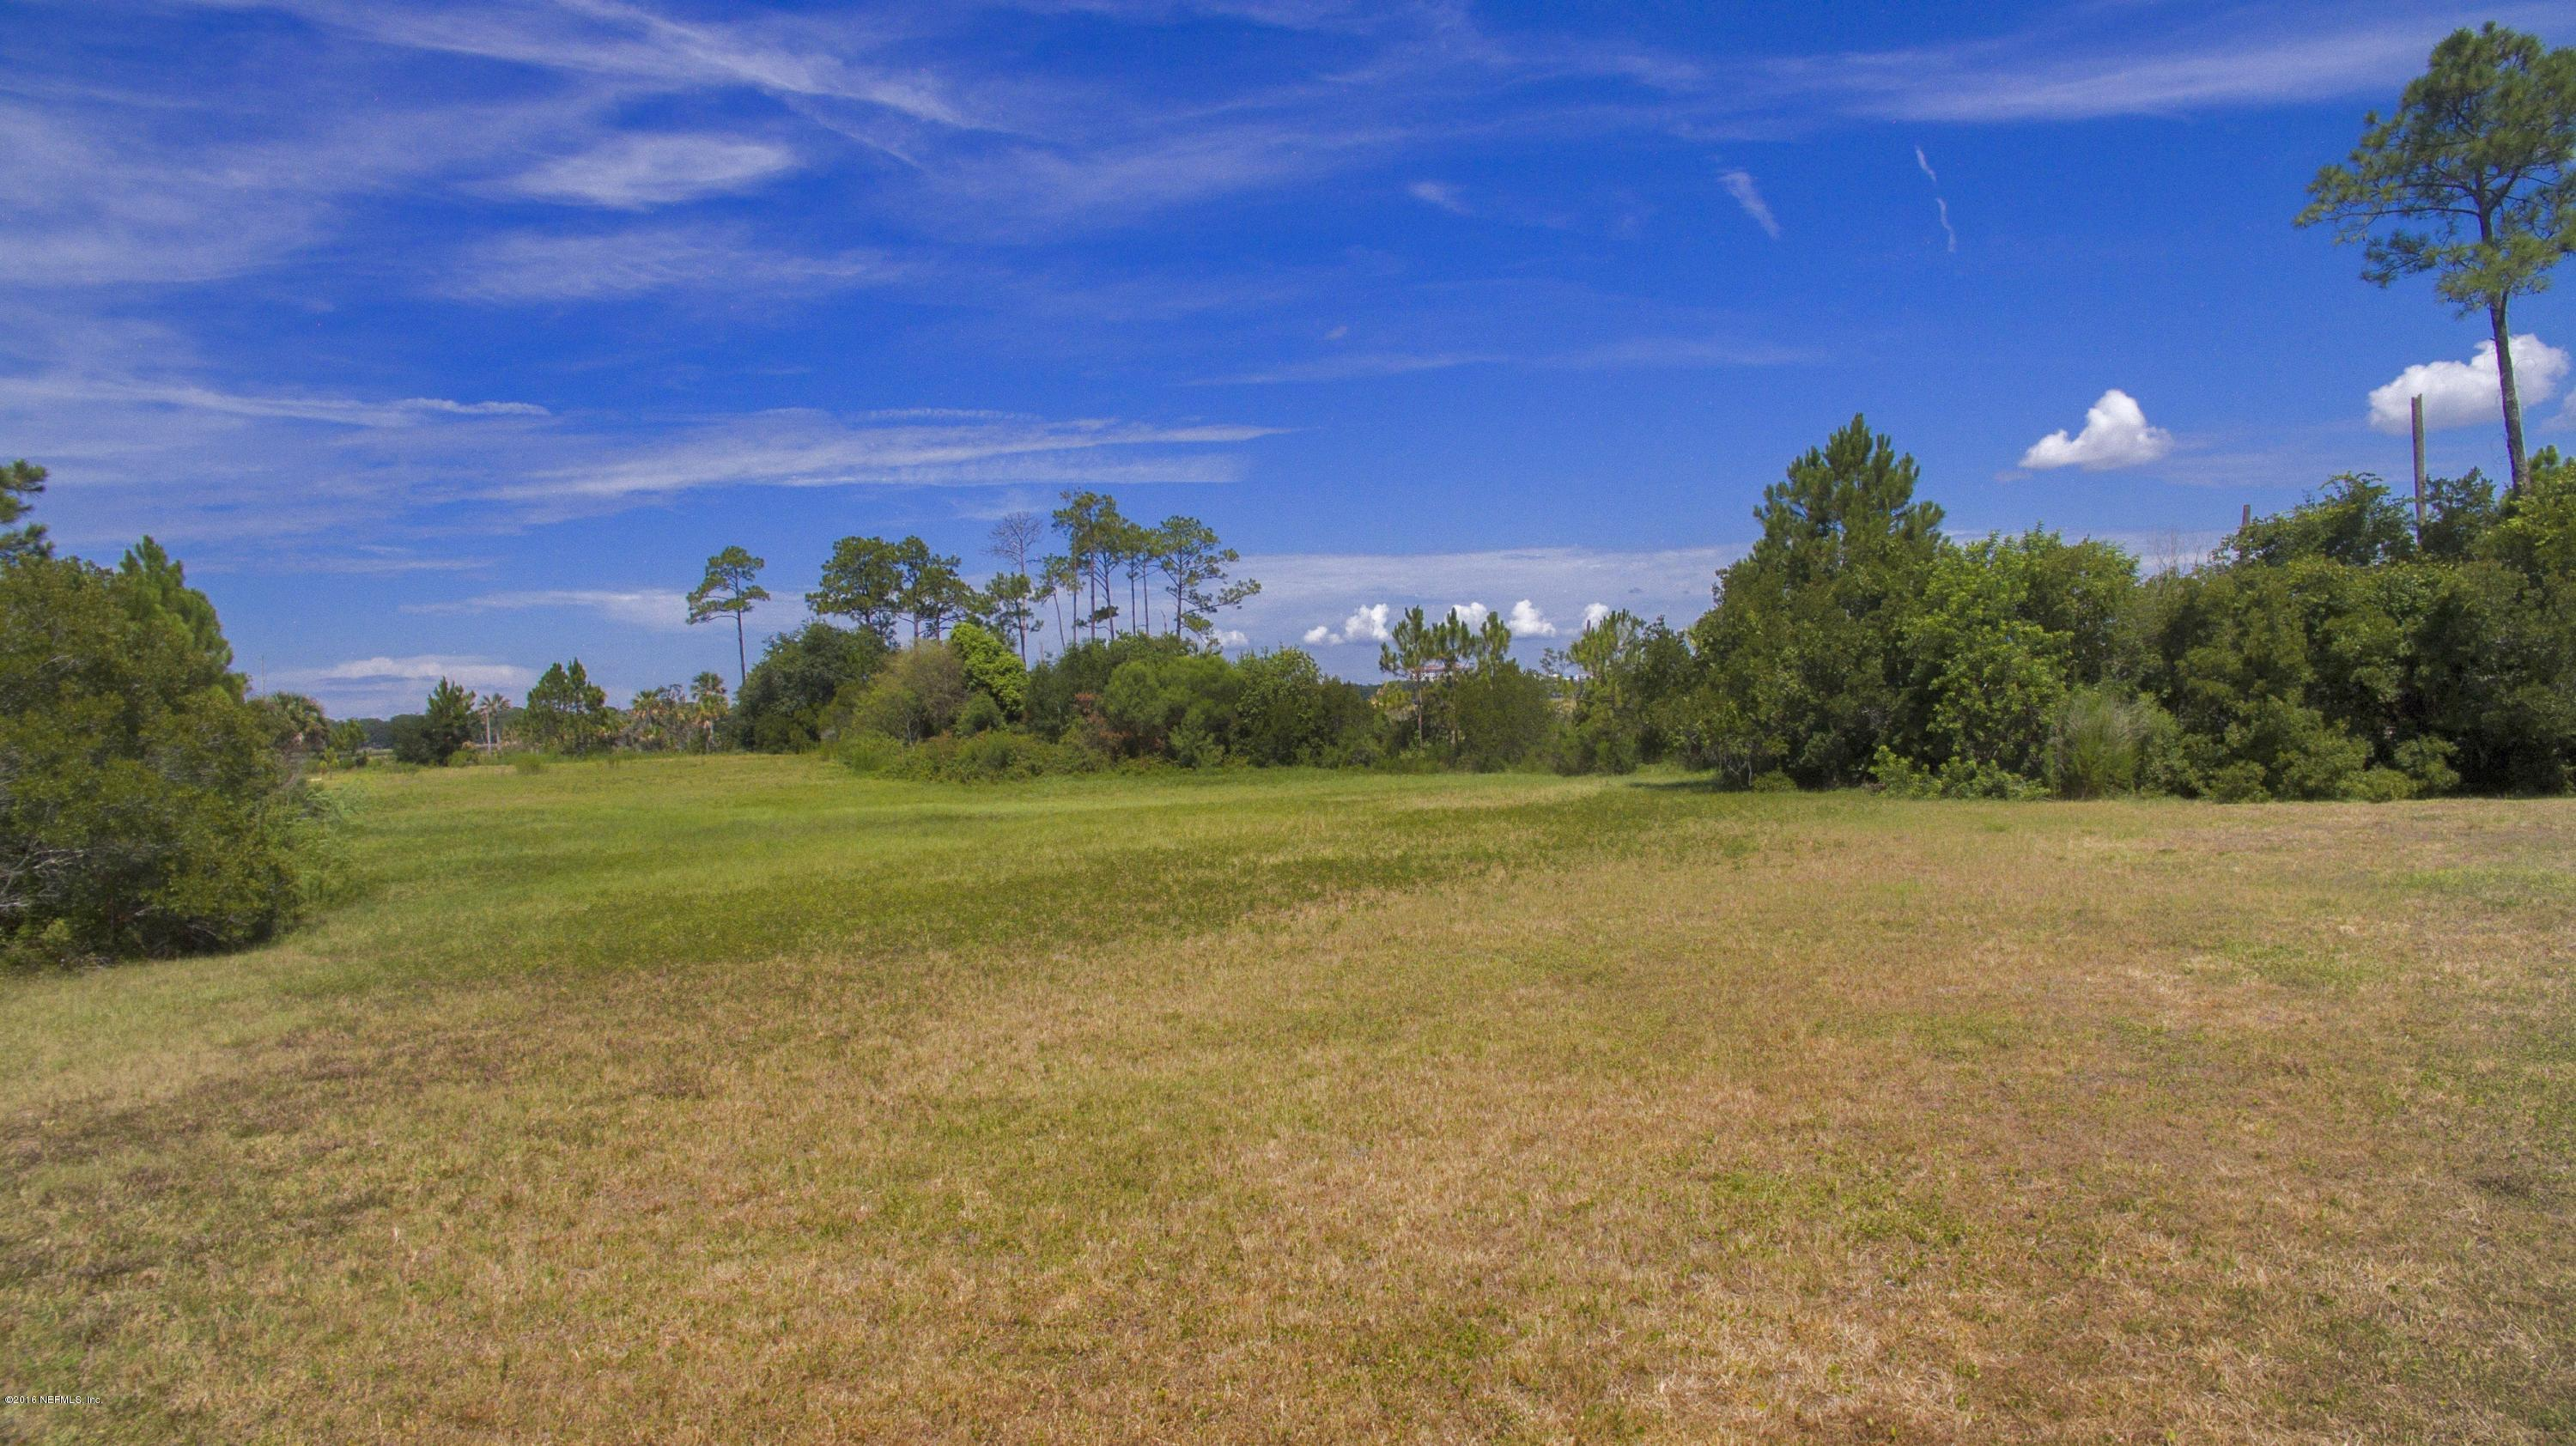 618 IBIS COVE, PONTE VEDRA BEACH, FLORIDA 32082, ,Vacant land,For sale,IBIS COVE,840017